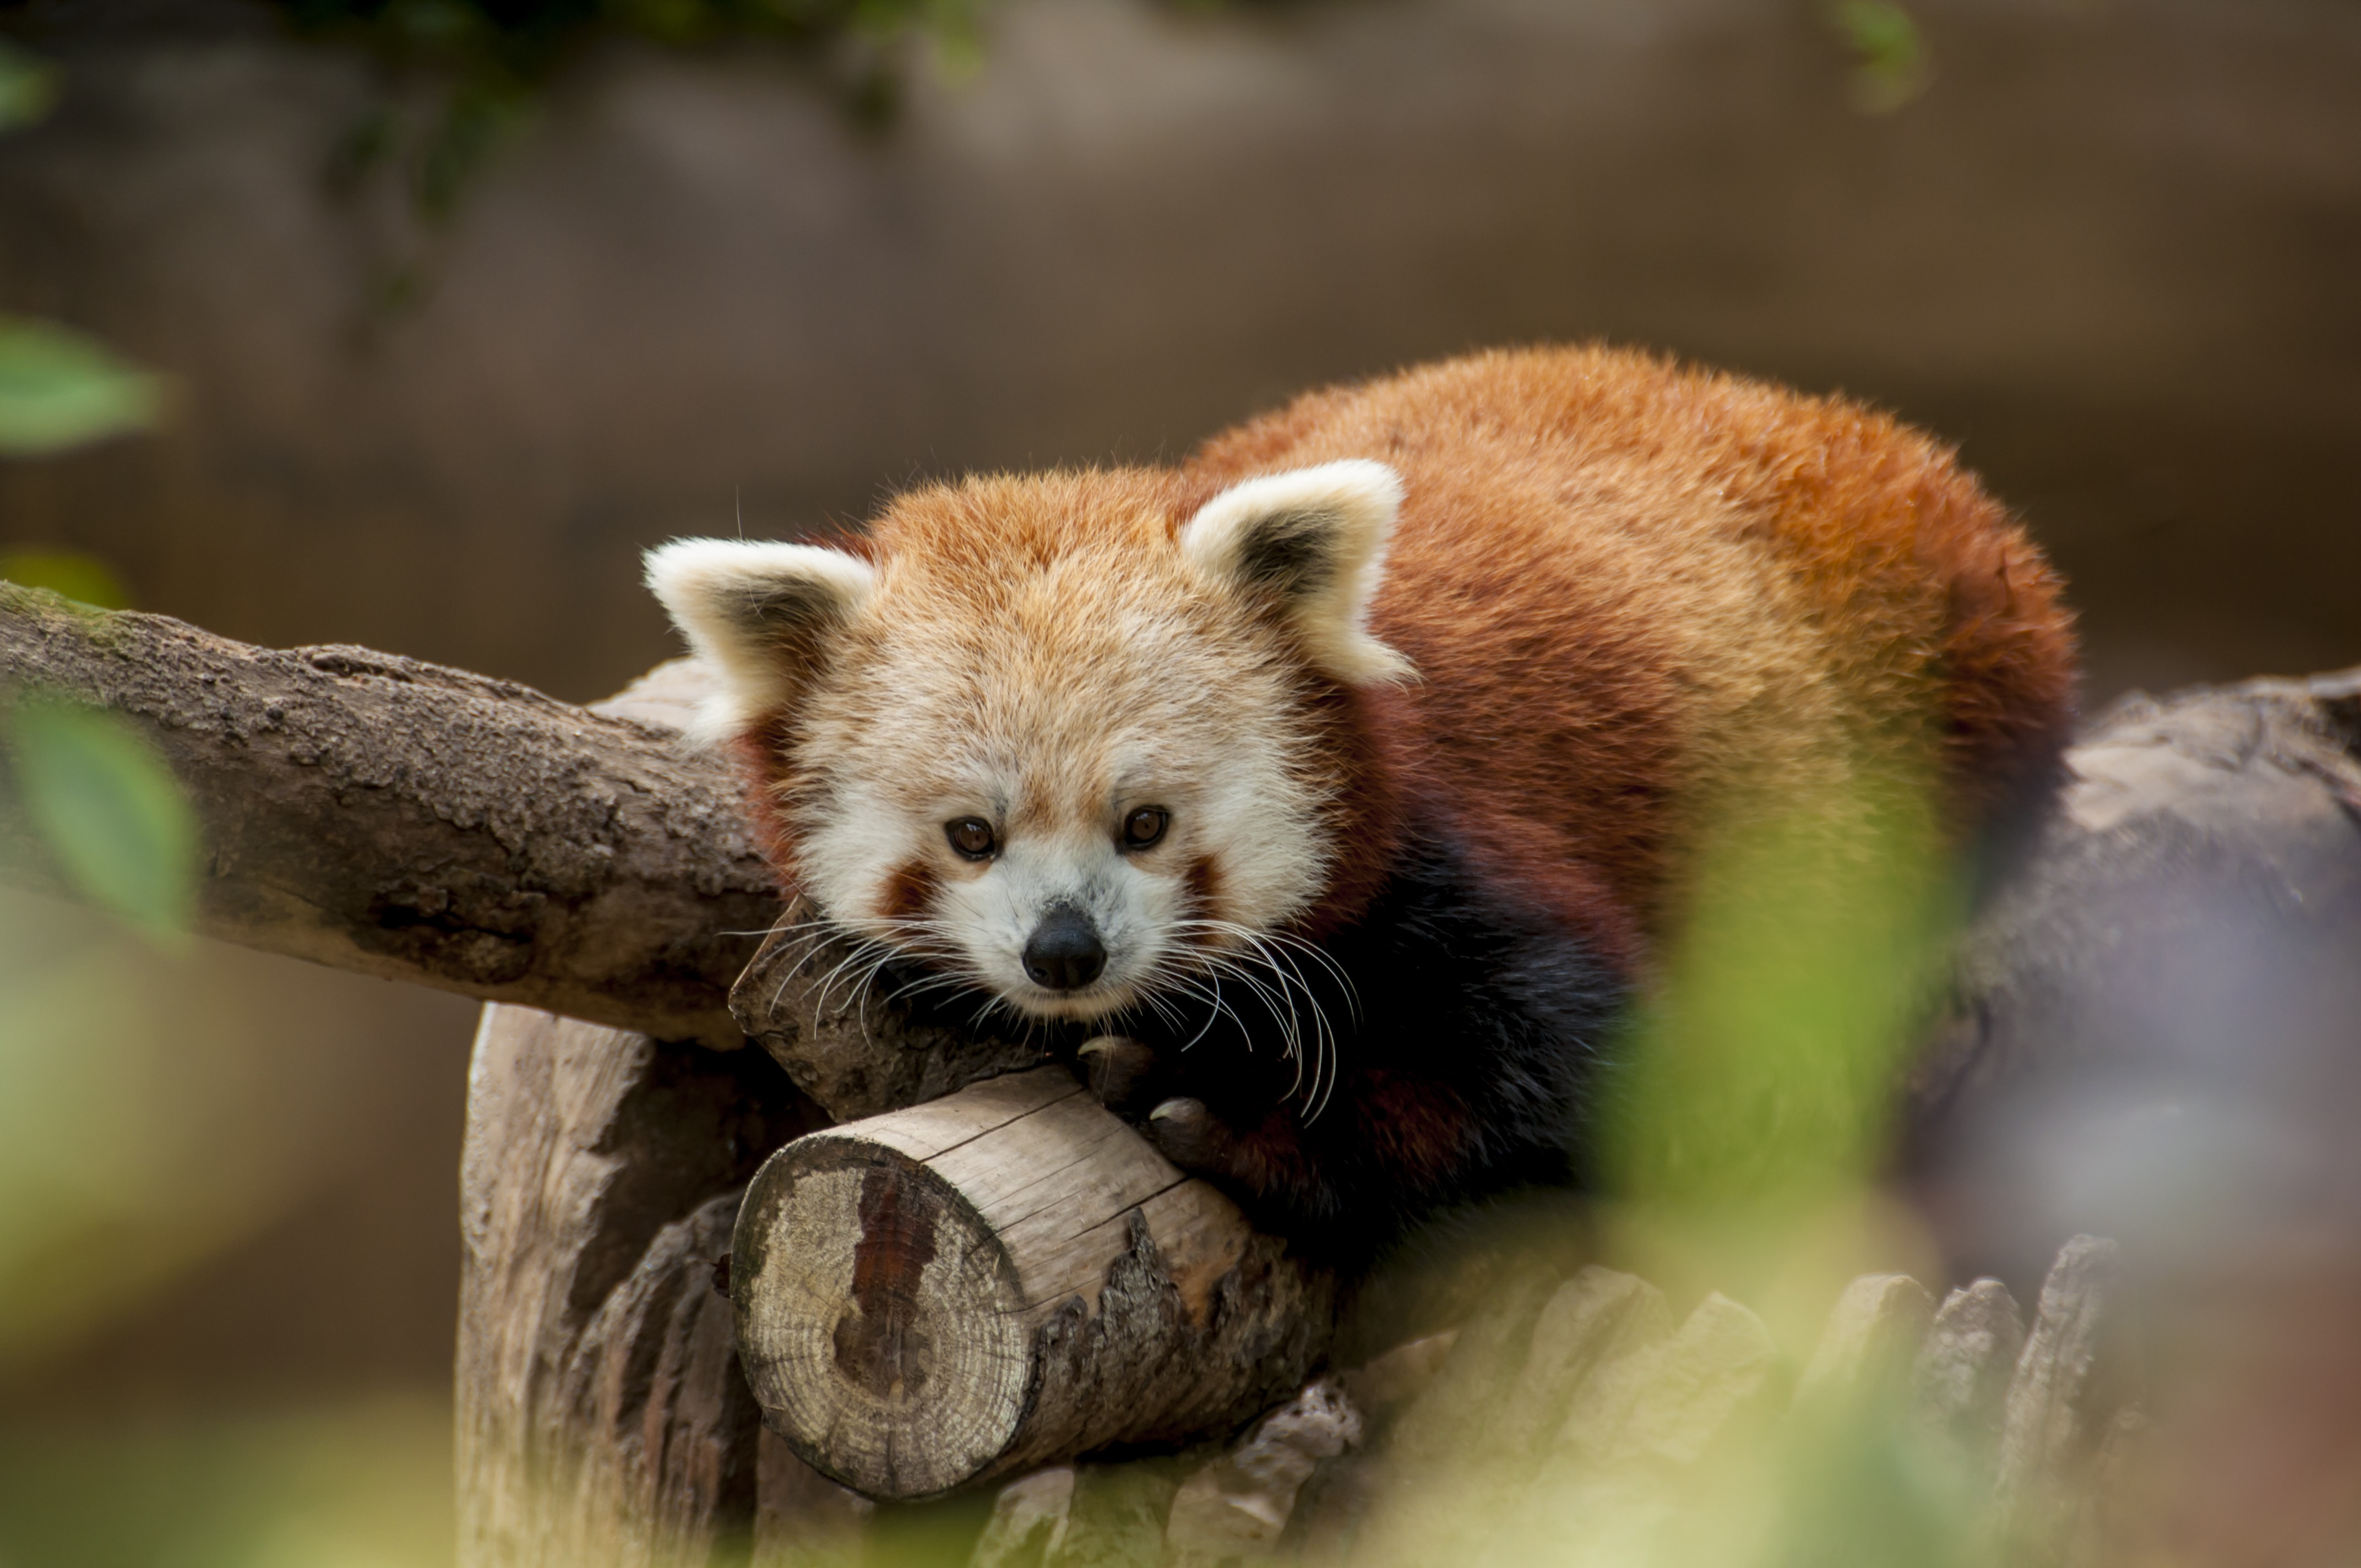 A small red panda snuggled on a tree trunk